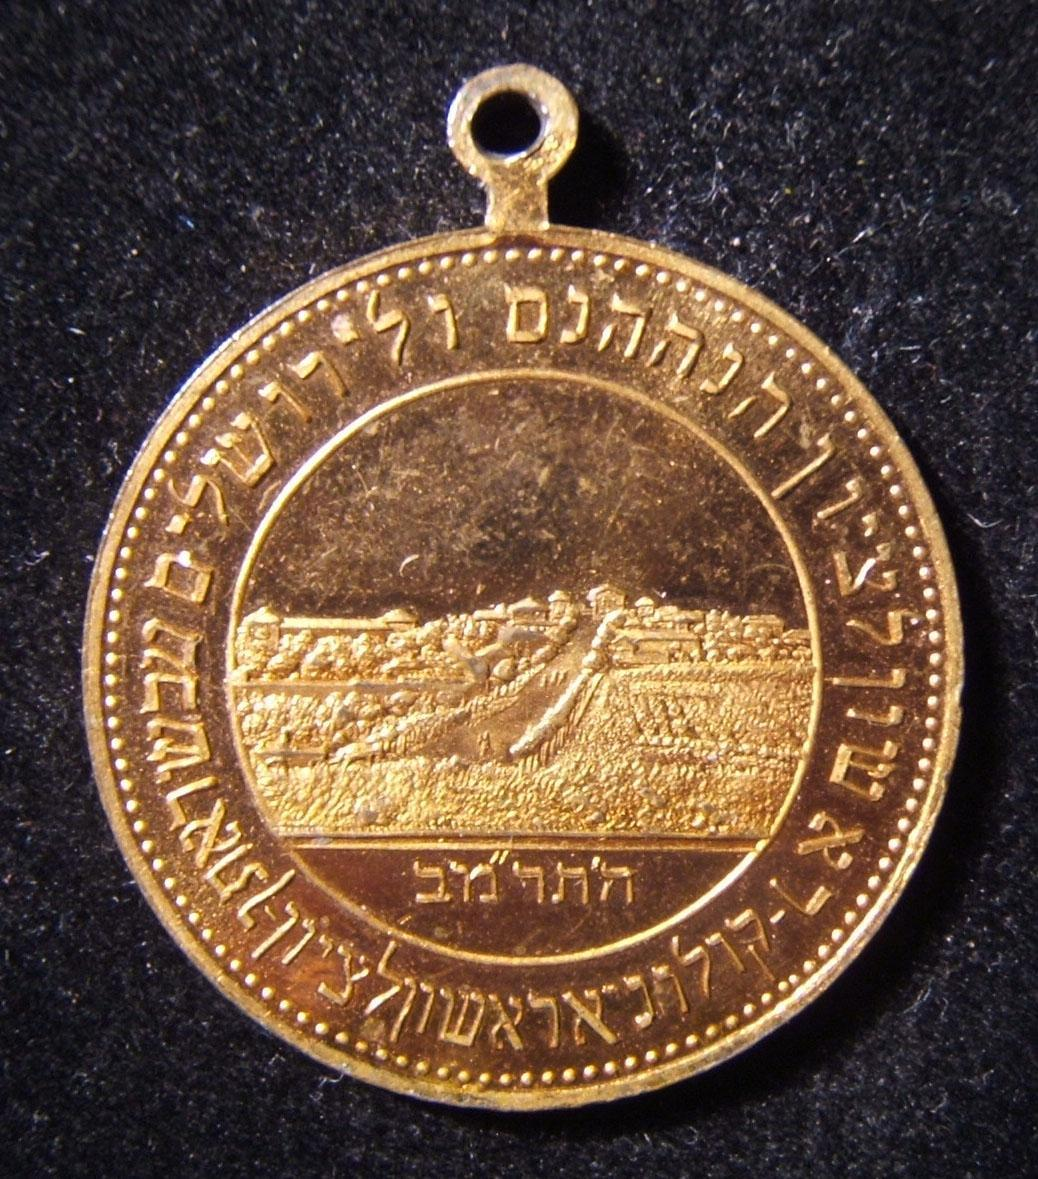 Palestine (Russia?): Rishon LeZion Jewish settlement token, c. late 19th C. (1889/92?); copper; may be maker-maked